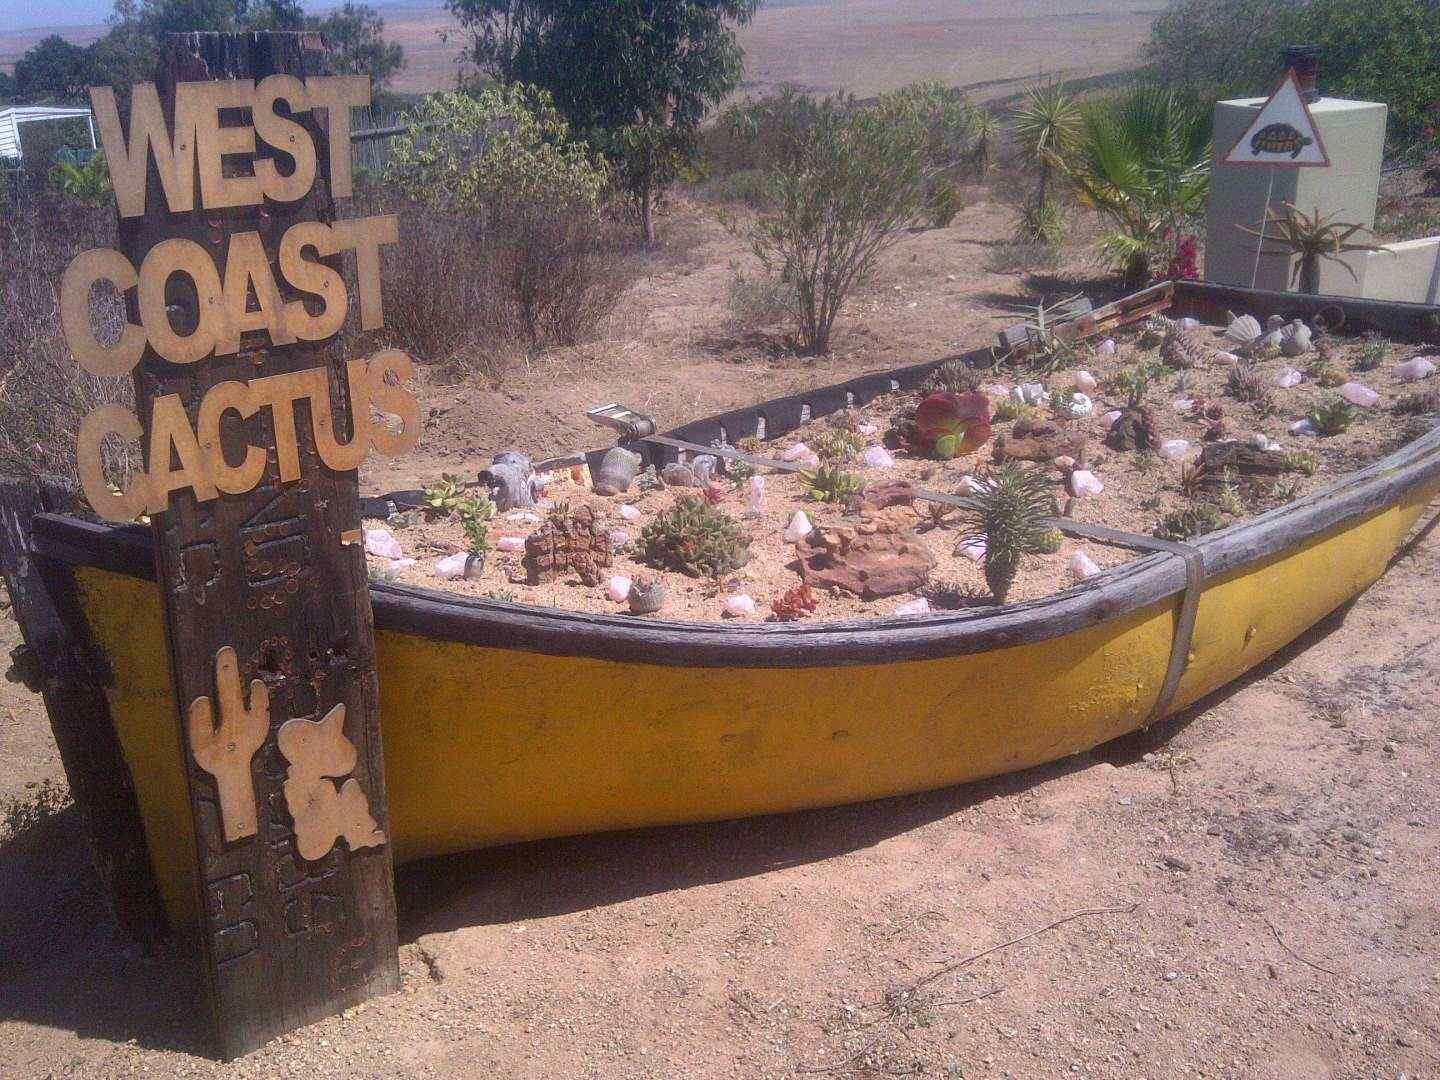 West Coast Cactus Self Catering Holiday Apartment St